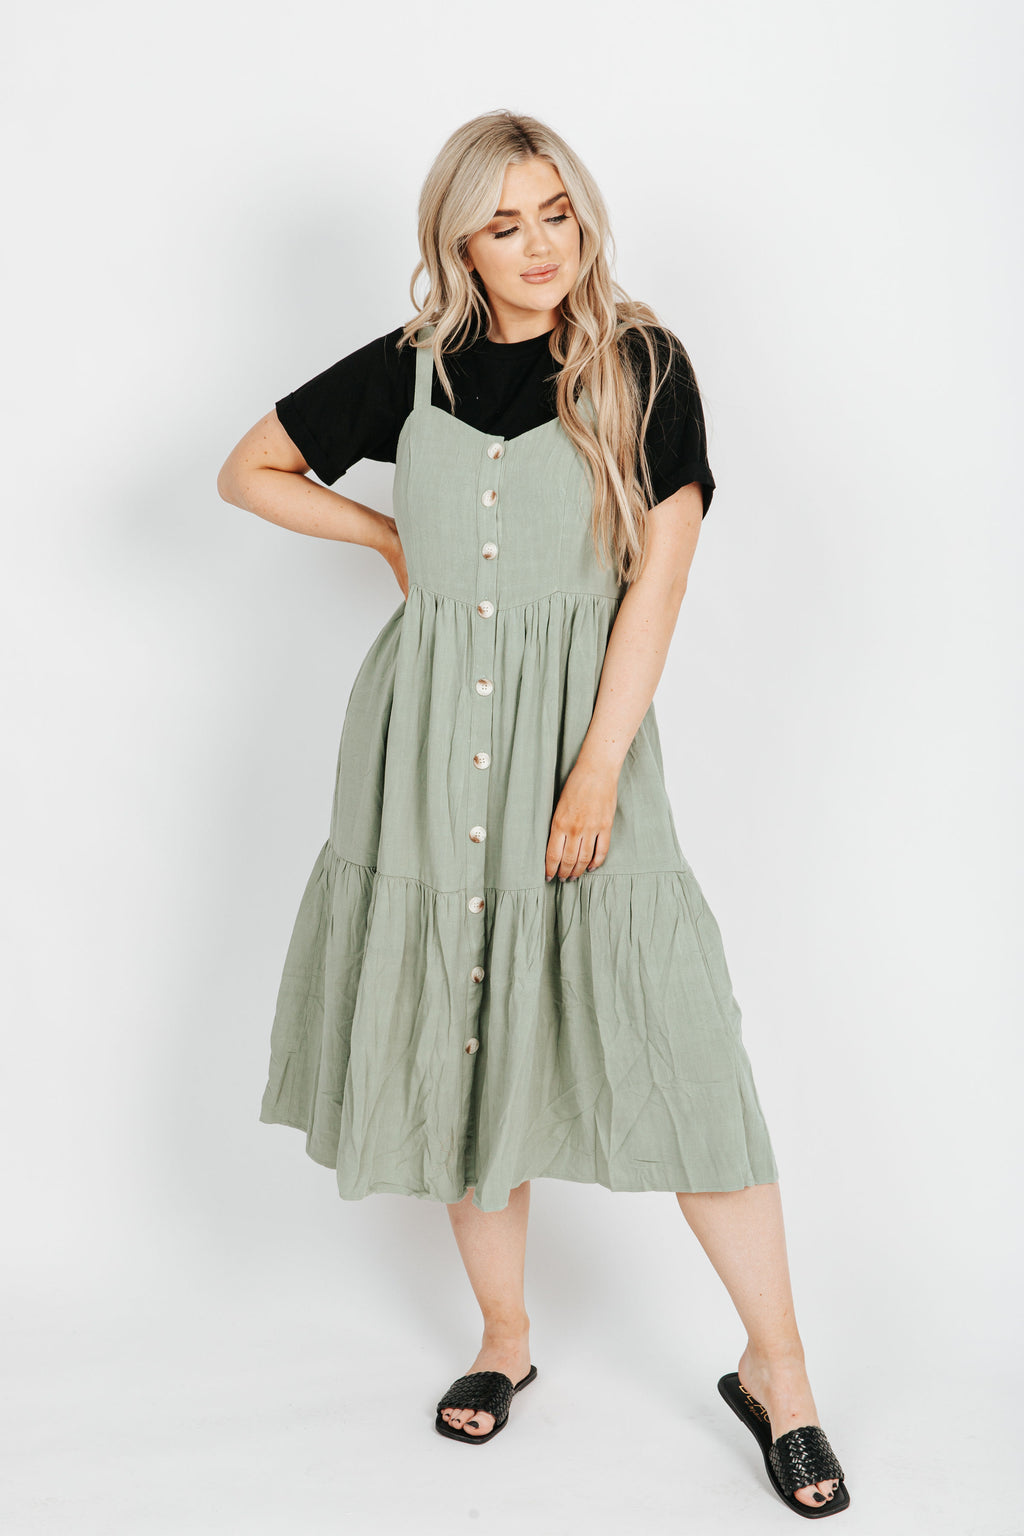 The Amy Overall Dress in Light Olive